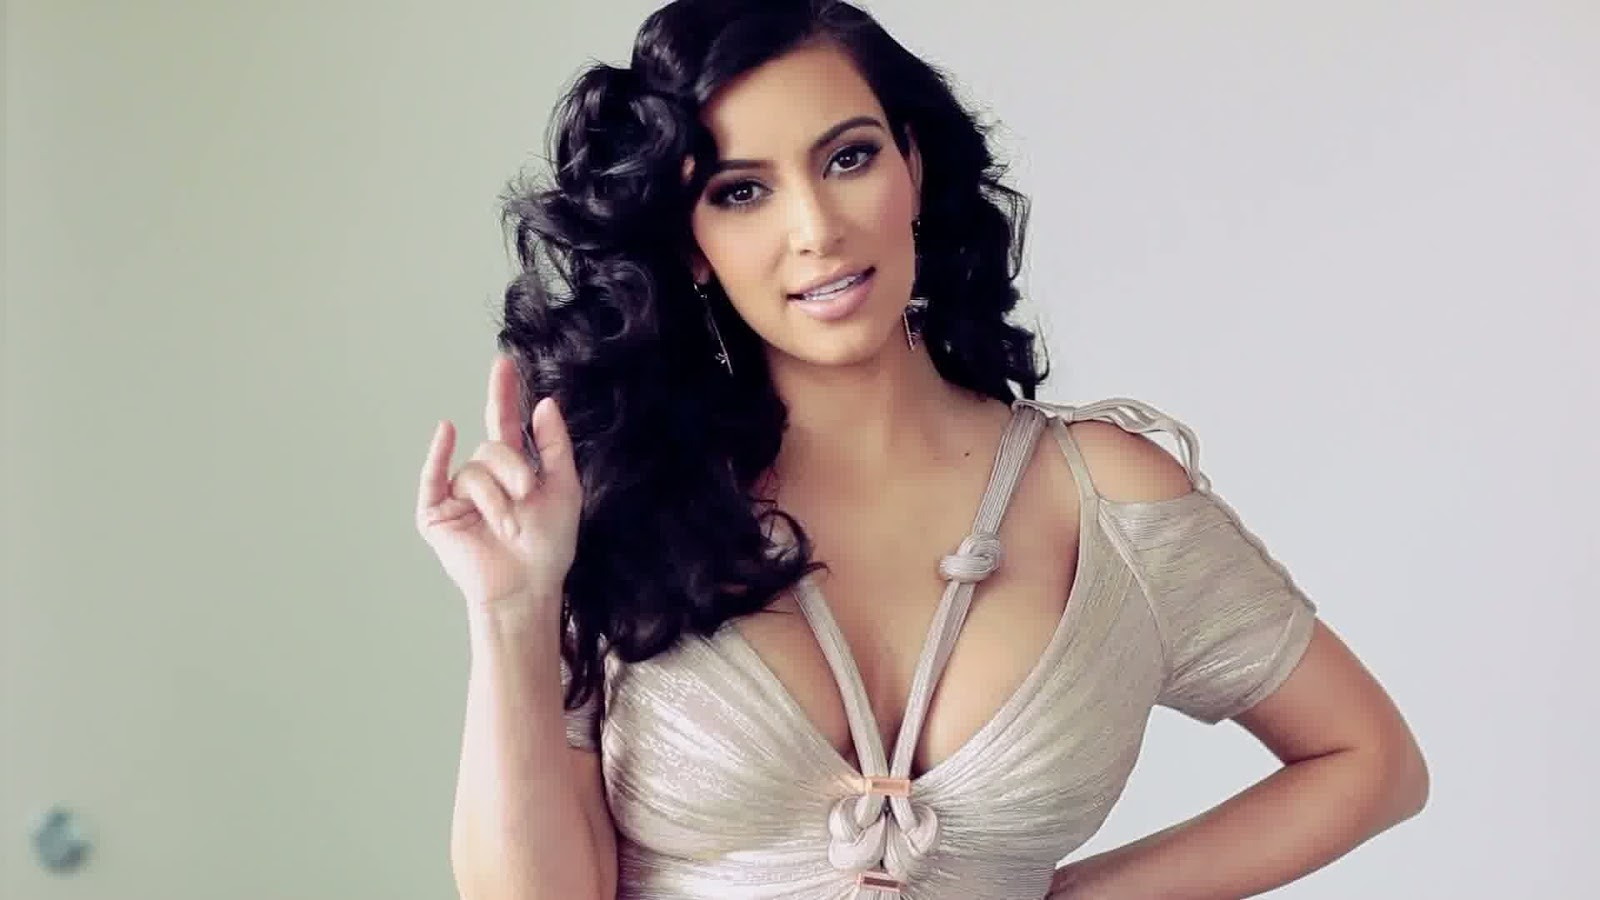 HollyWood Stars Kim Kardashian Hot HD Wallpapers 2013